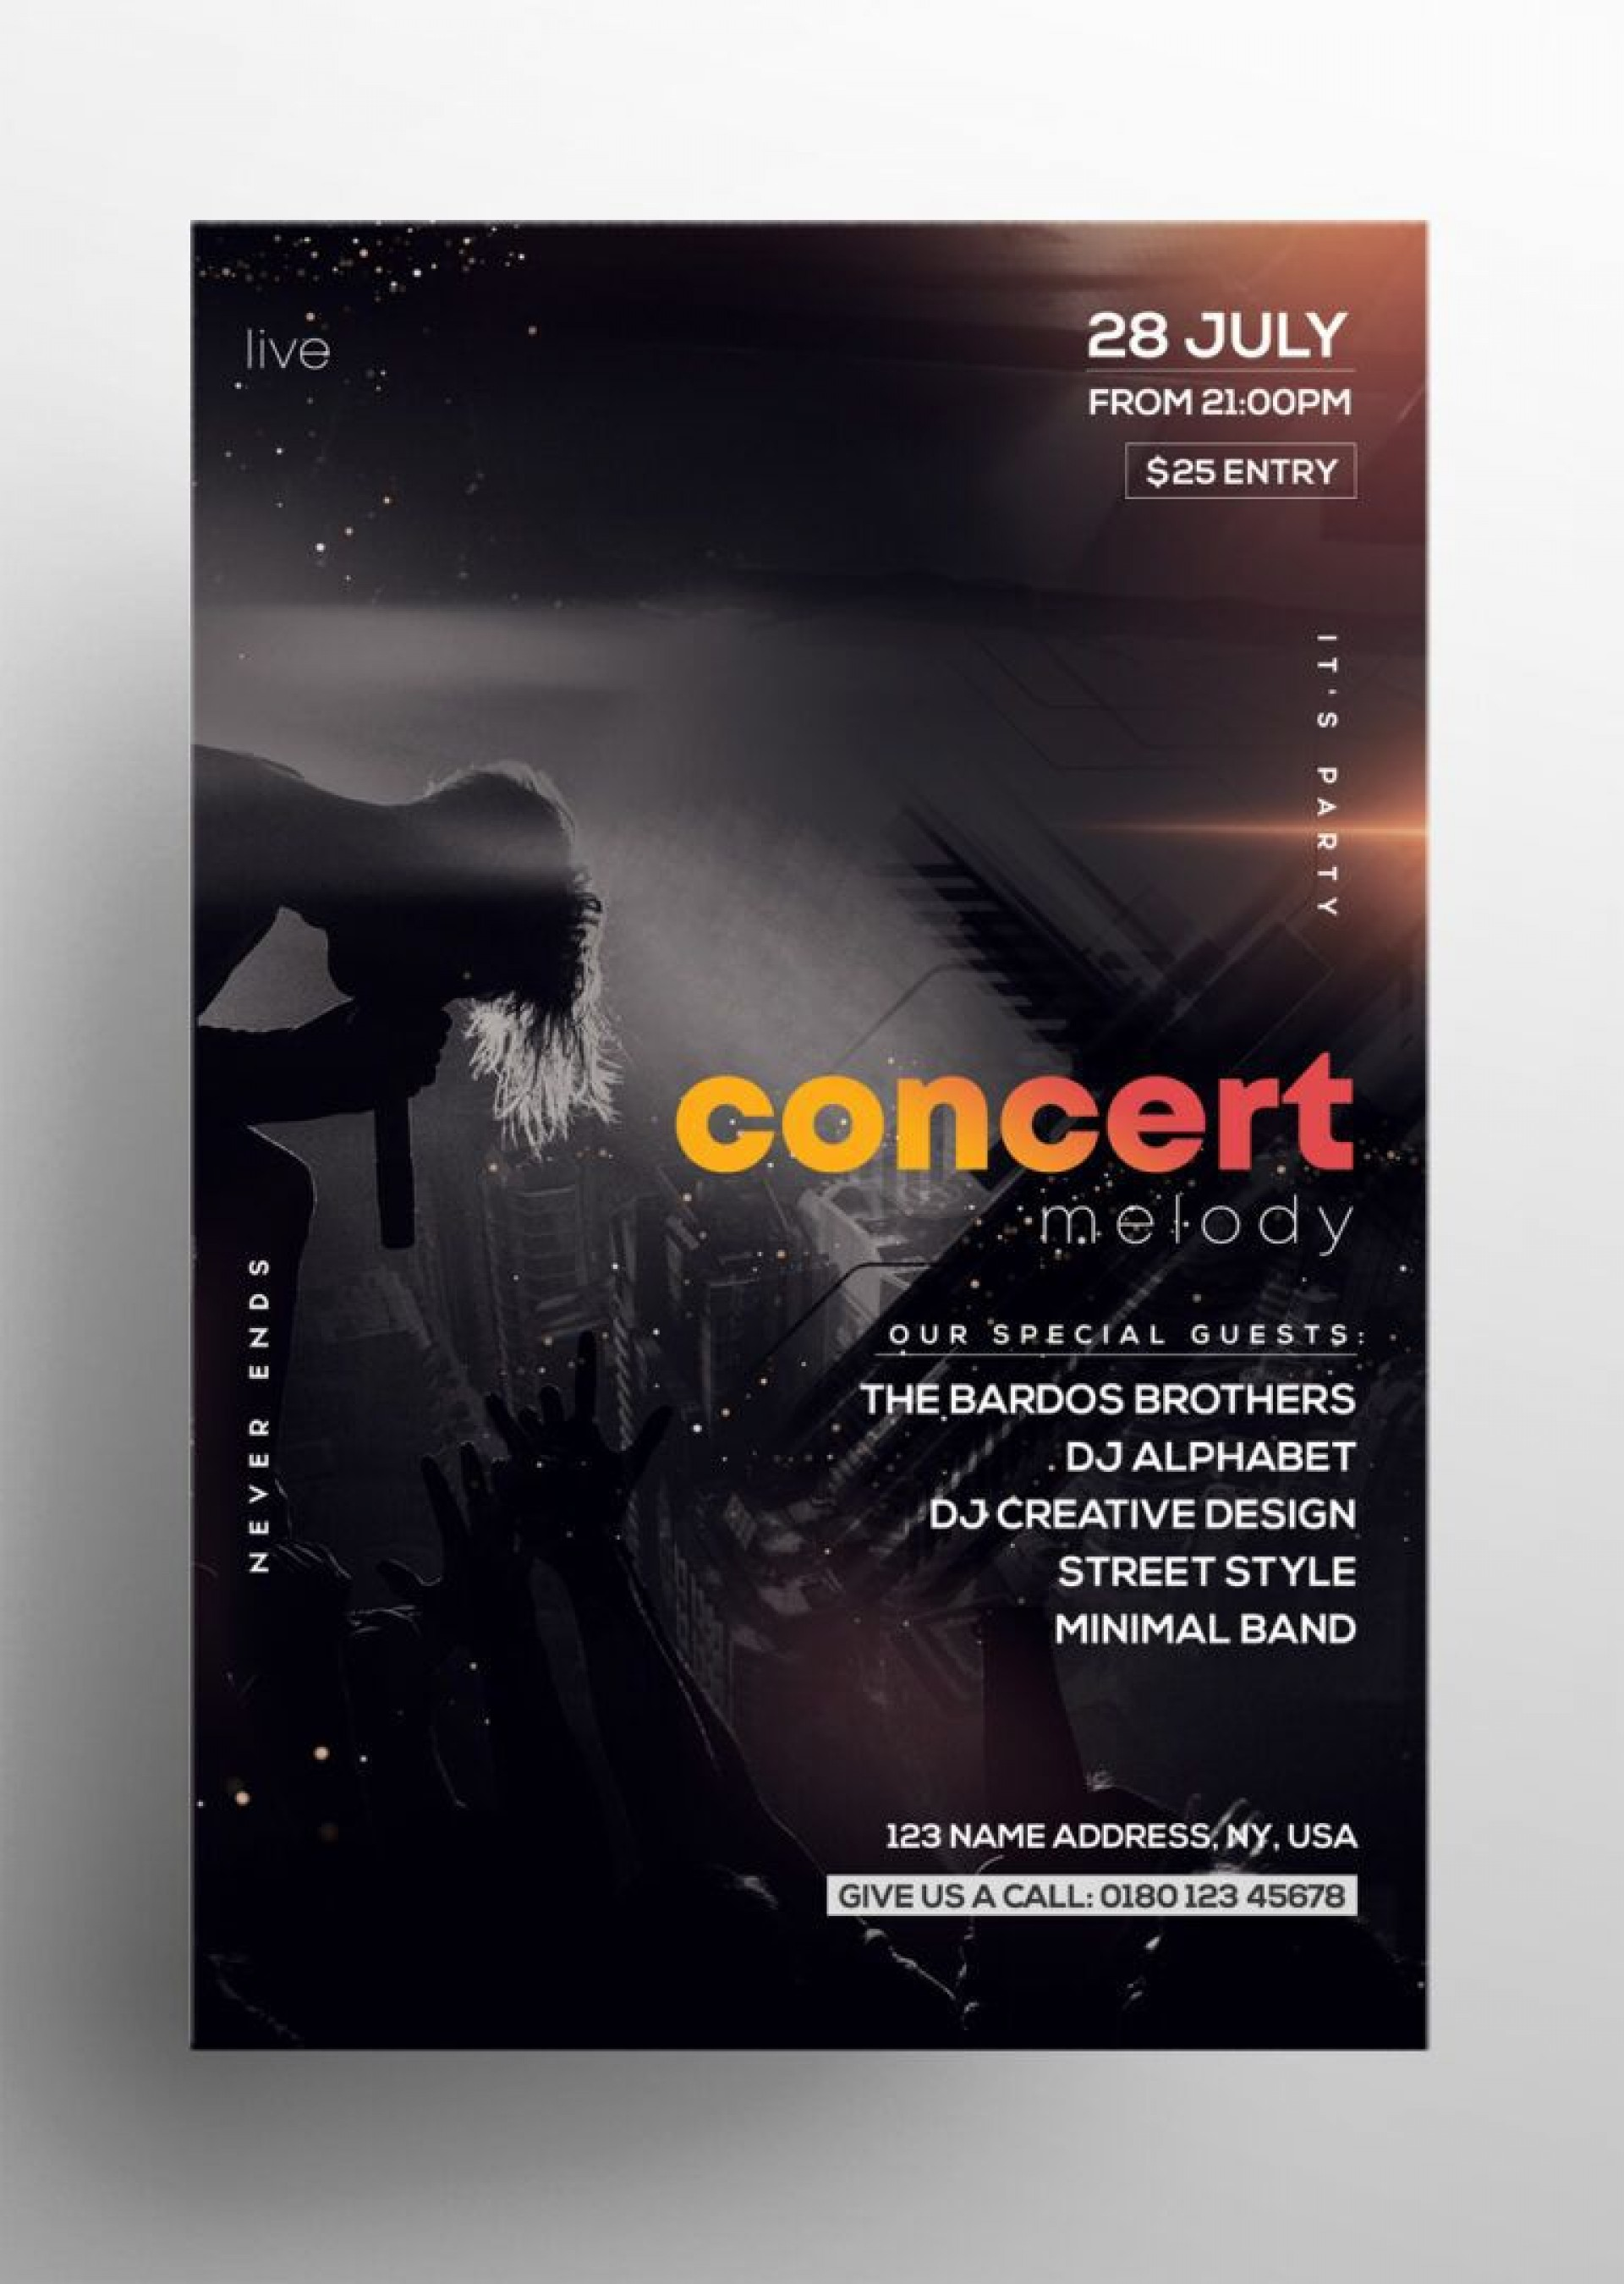 000 Unforgettable Free Concert Poster Template Highest Clarity  Rock Psd Christma Photoshop1920